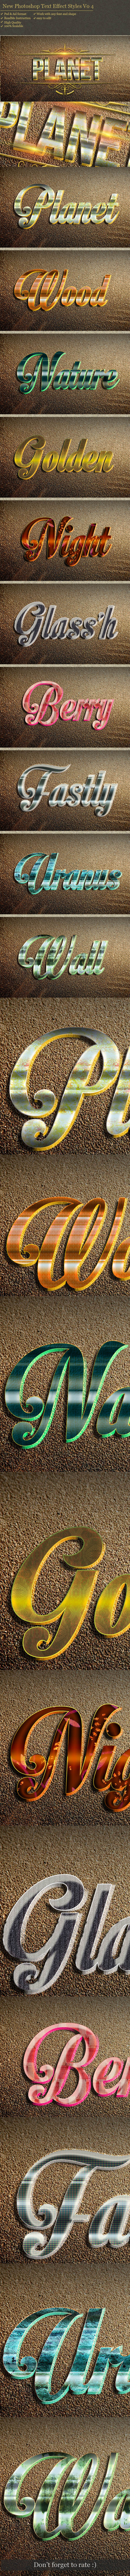 New Photoshop Text Styles vol 4 - Text Effects Styles